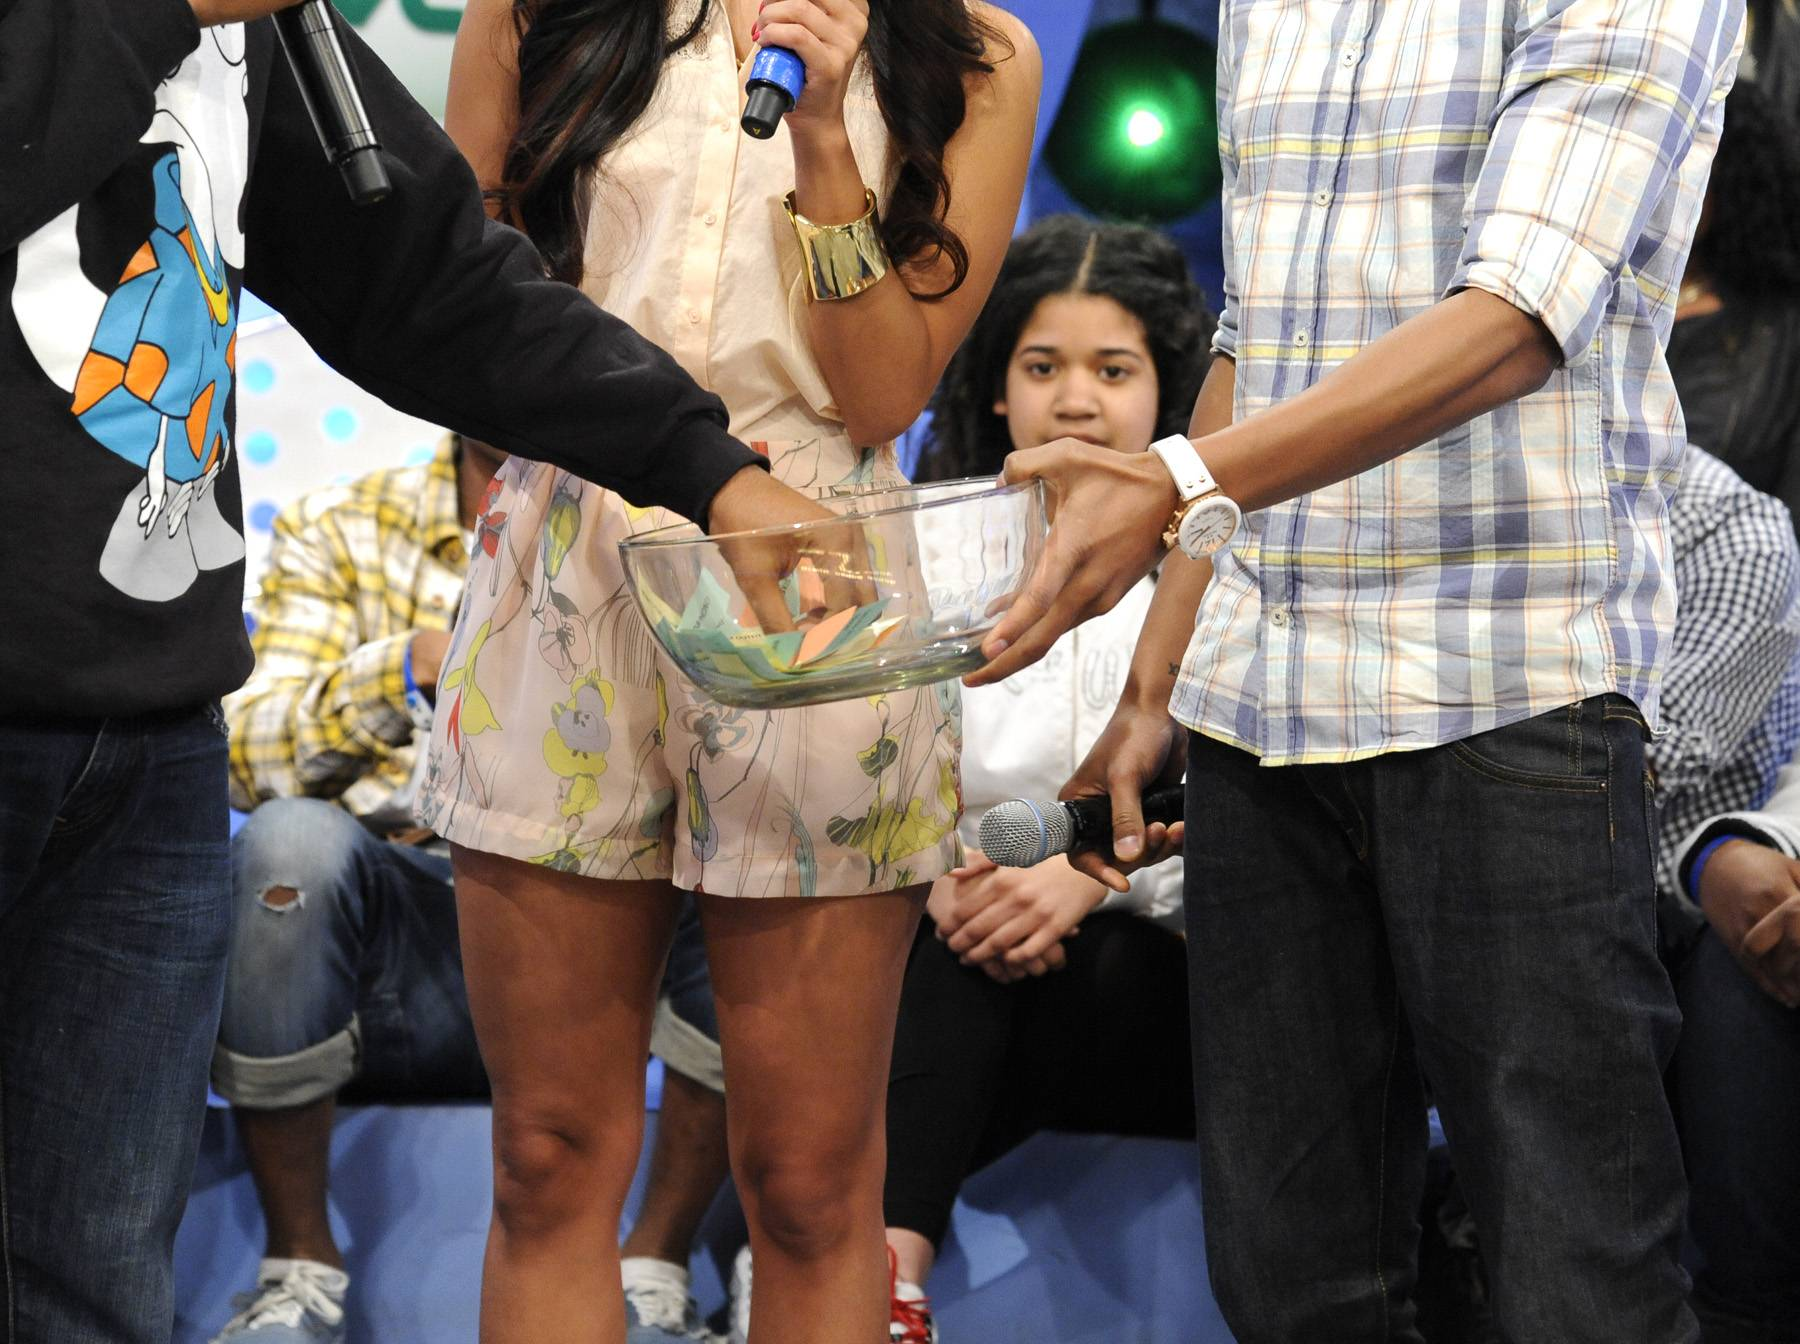 Take Your Pick - Childish Gambino picks out of the Bowl of Randomness with Rocsi Diaz and Terrence J at 106 & Park, May 1, 2012. (Photo: John Ricard / BET)